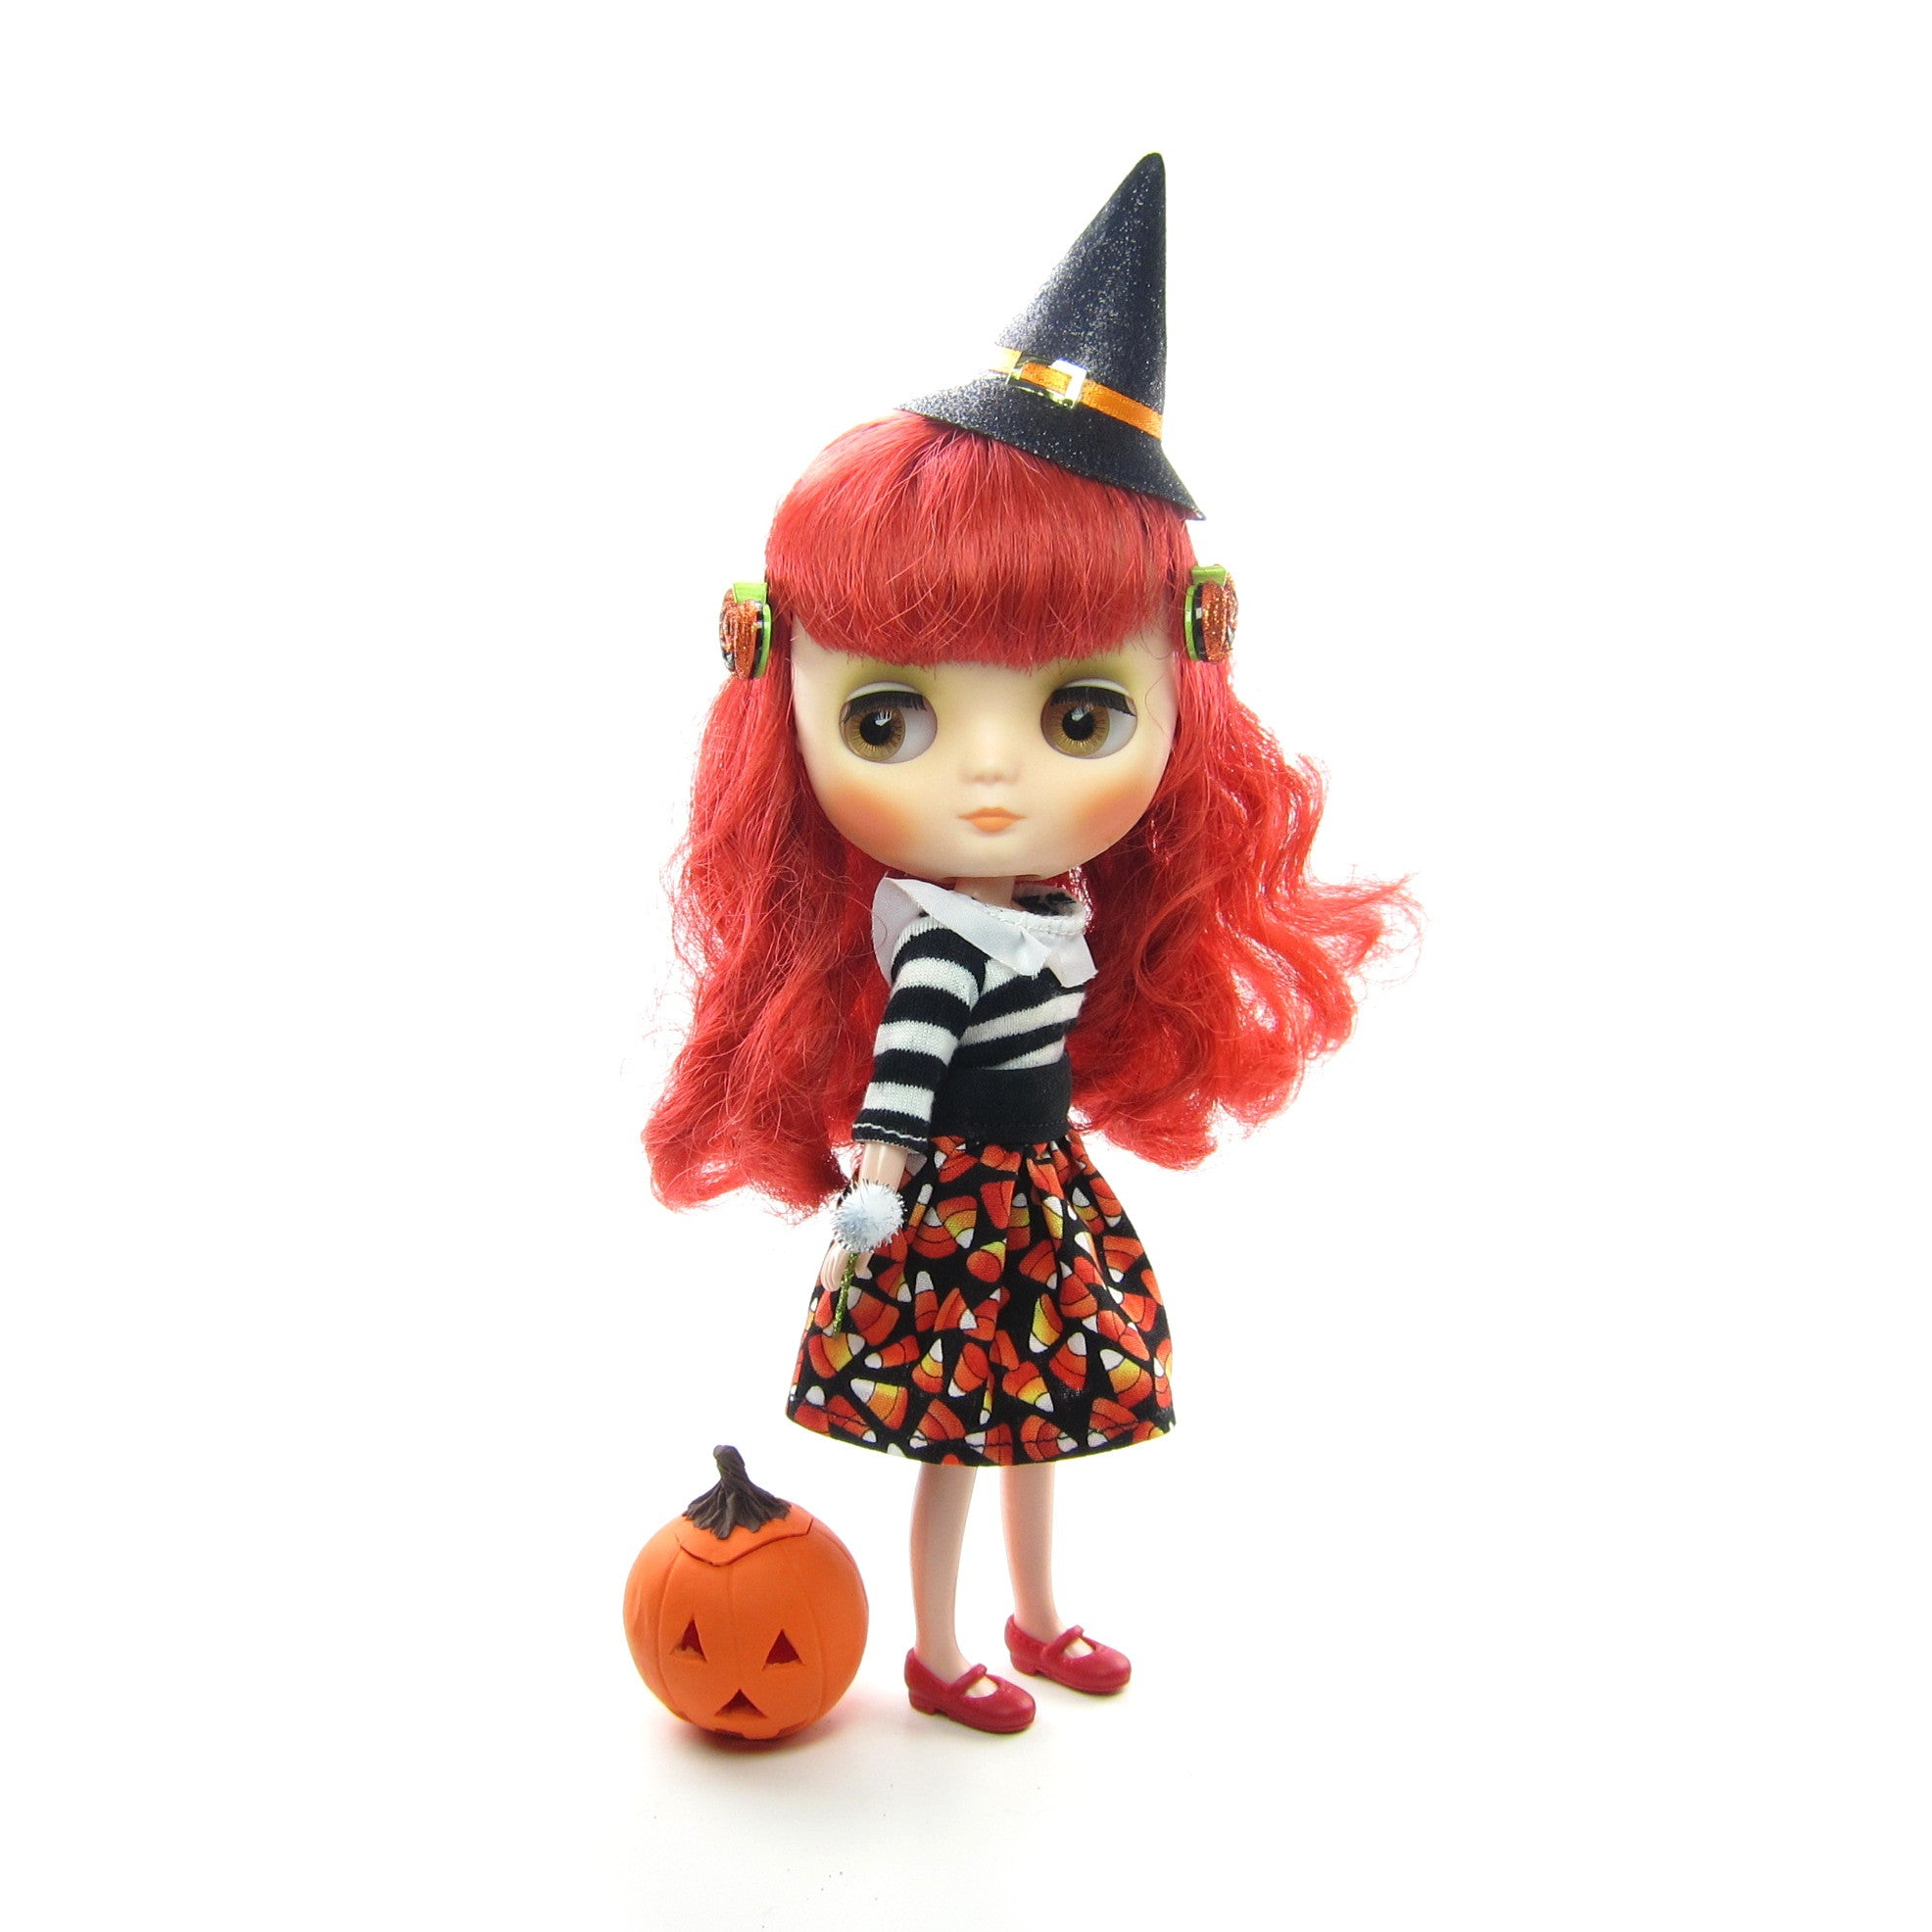 Halloween candy corn skirt for Middie Blythe doll